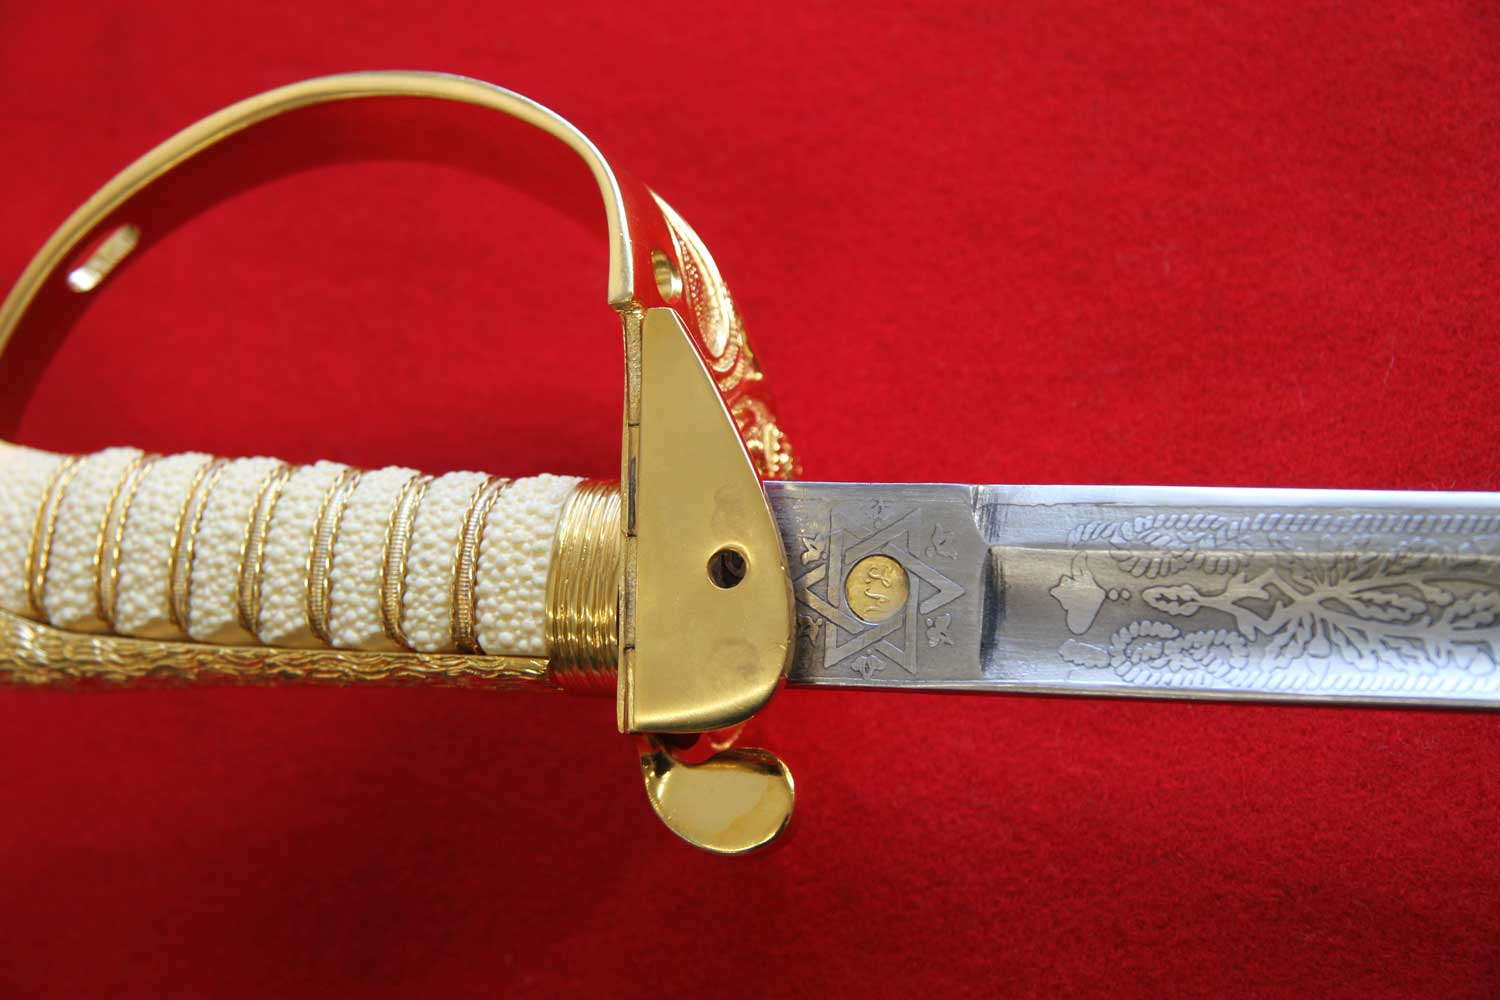 British, 1827 Naval Officer's Sword